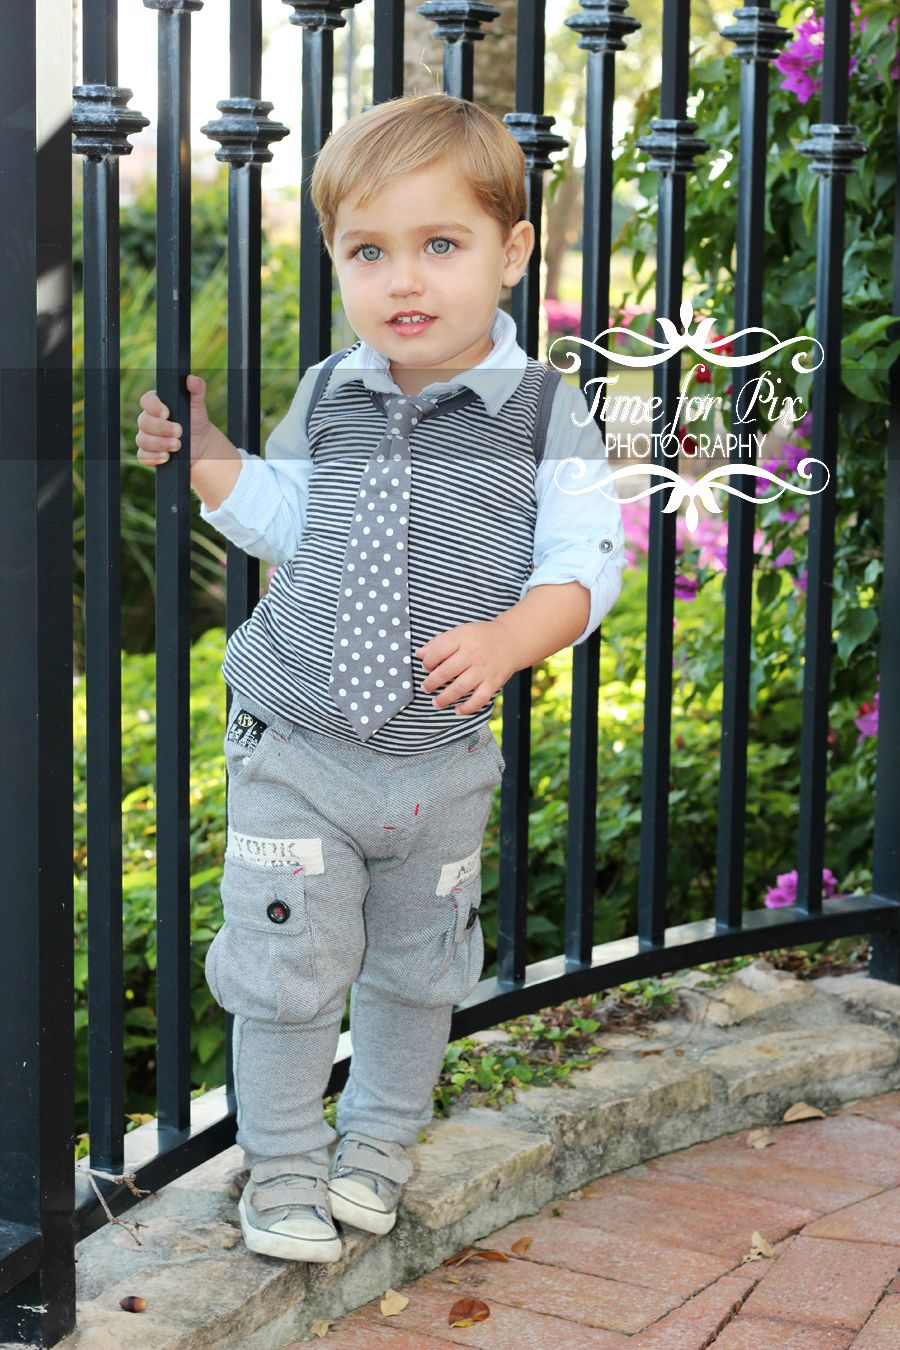 Toddler Boy Model Family Child Photographer Time For Pix